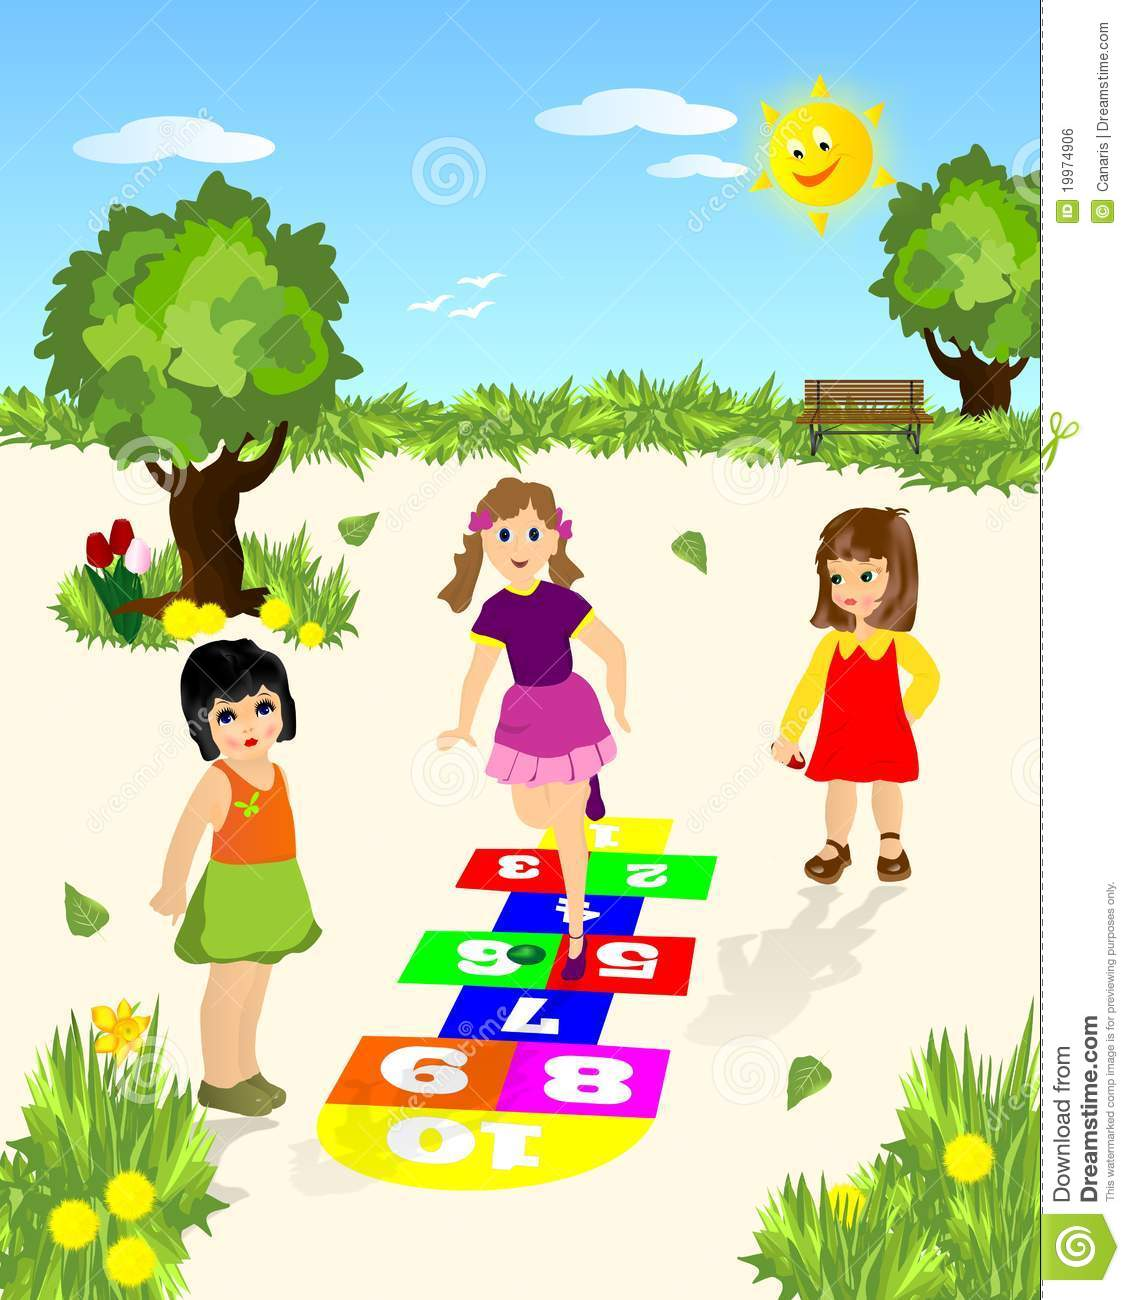 Hopscotch Cdr Vector Royalty Free Stock Image